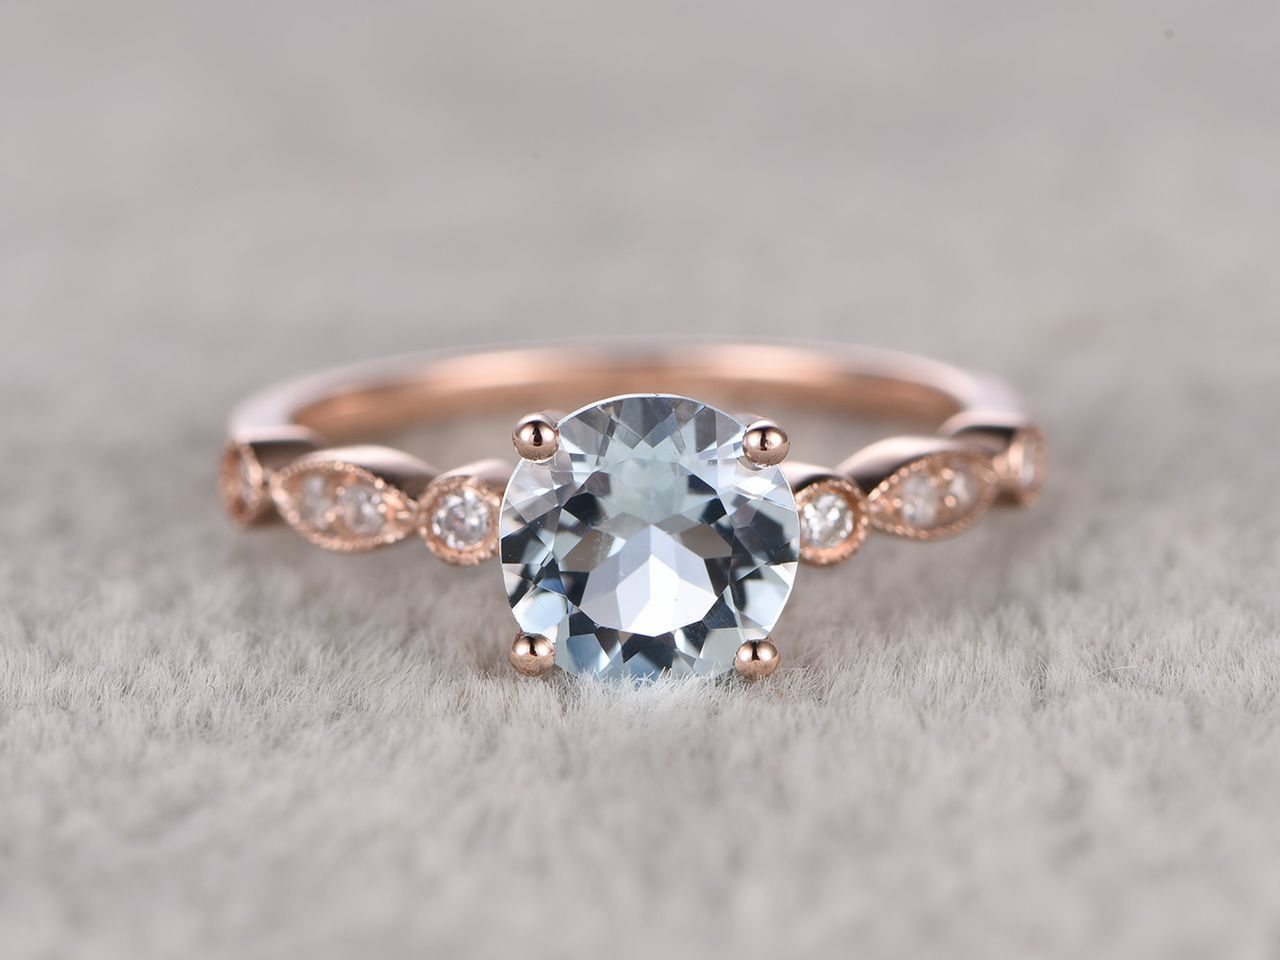 6mm Round Cut Aquamarine Engagement Ring Diamond Wedding Ring 14k